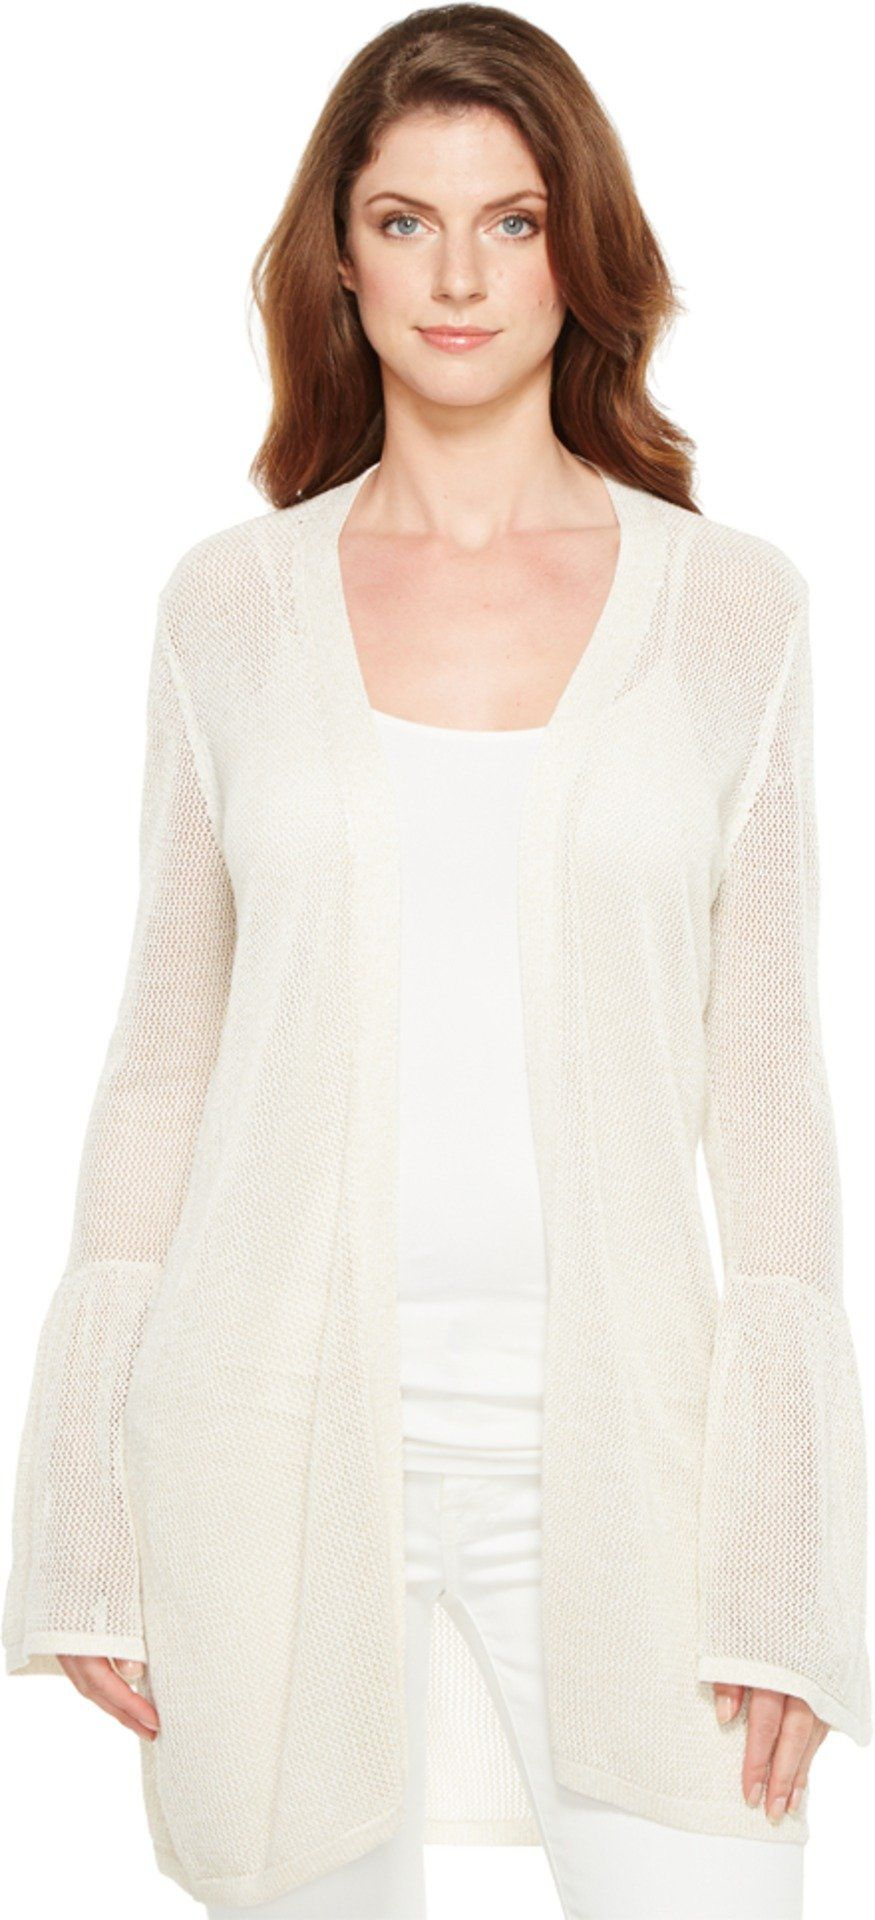 Calvin Klein Women's Bell Sleeve Cardigan with Lurex Soft White ...